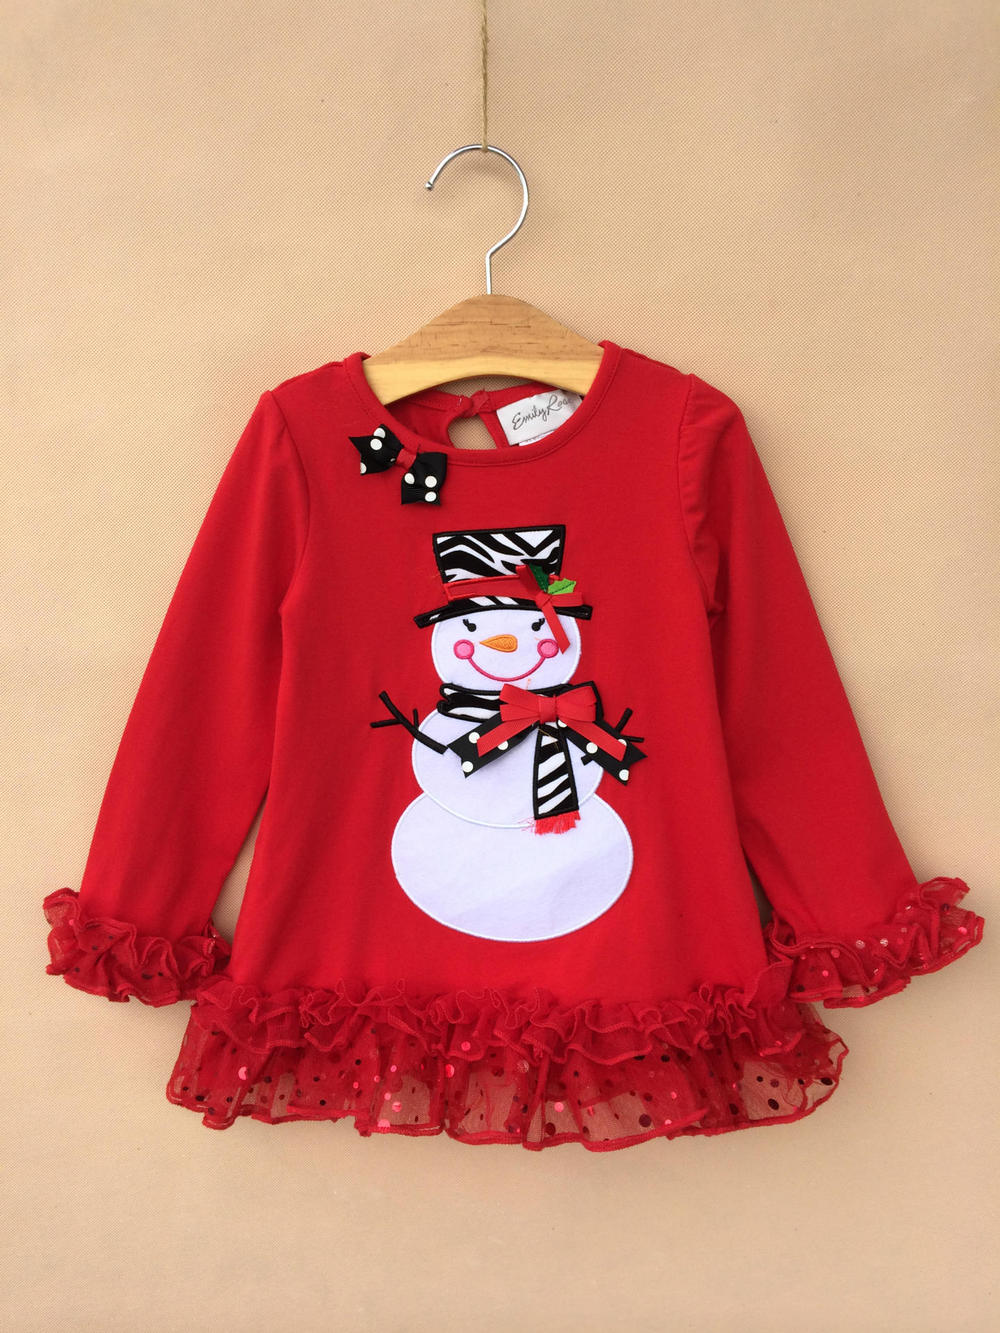 8t new 2015 fashion boutique outfits girls clothing for Boutique tops